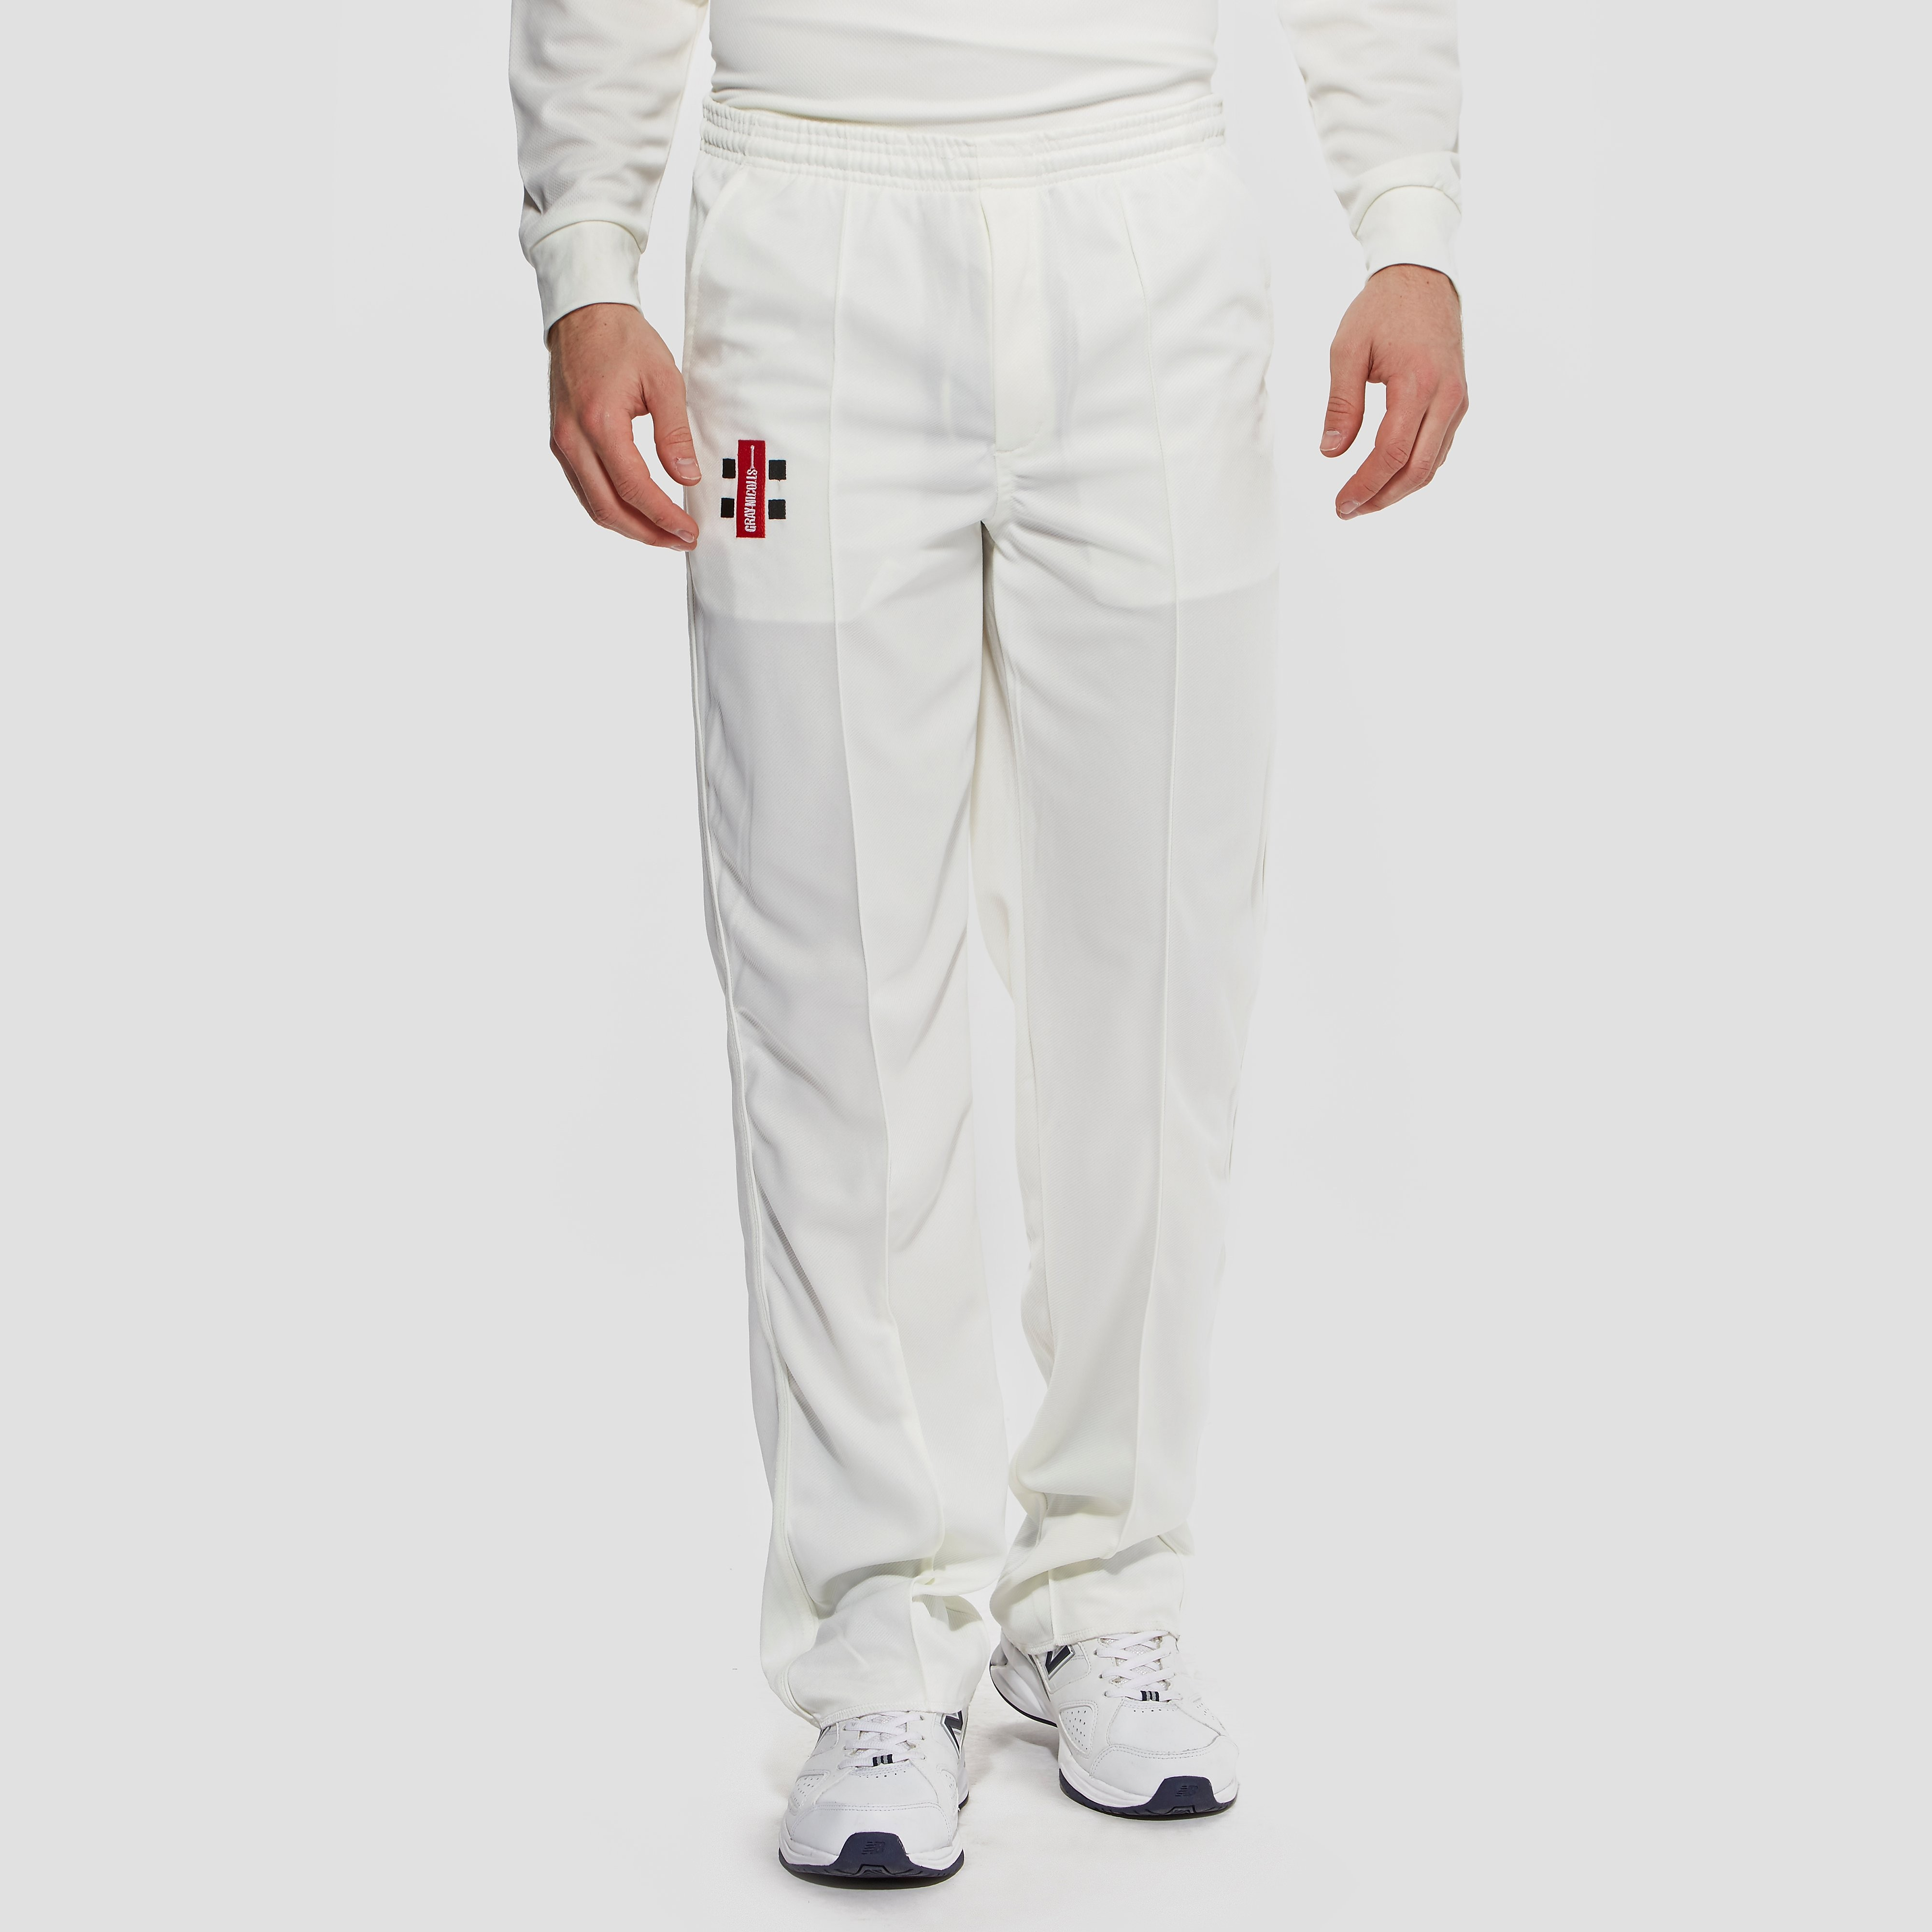 Gray Nicolls Matrix Men's Cricket Trousers